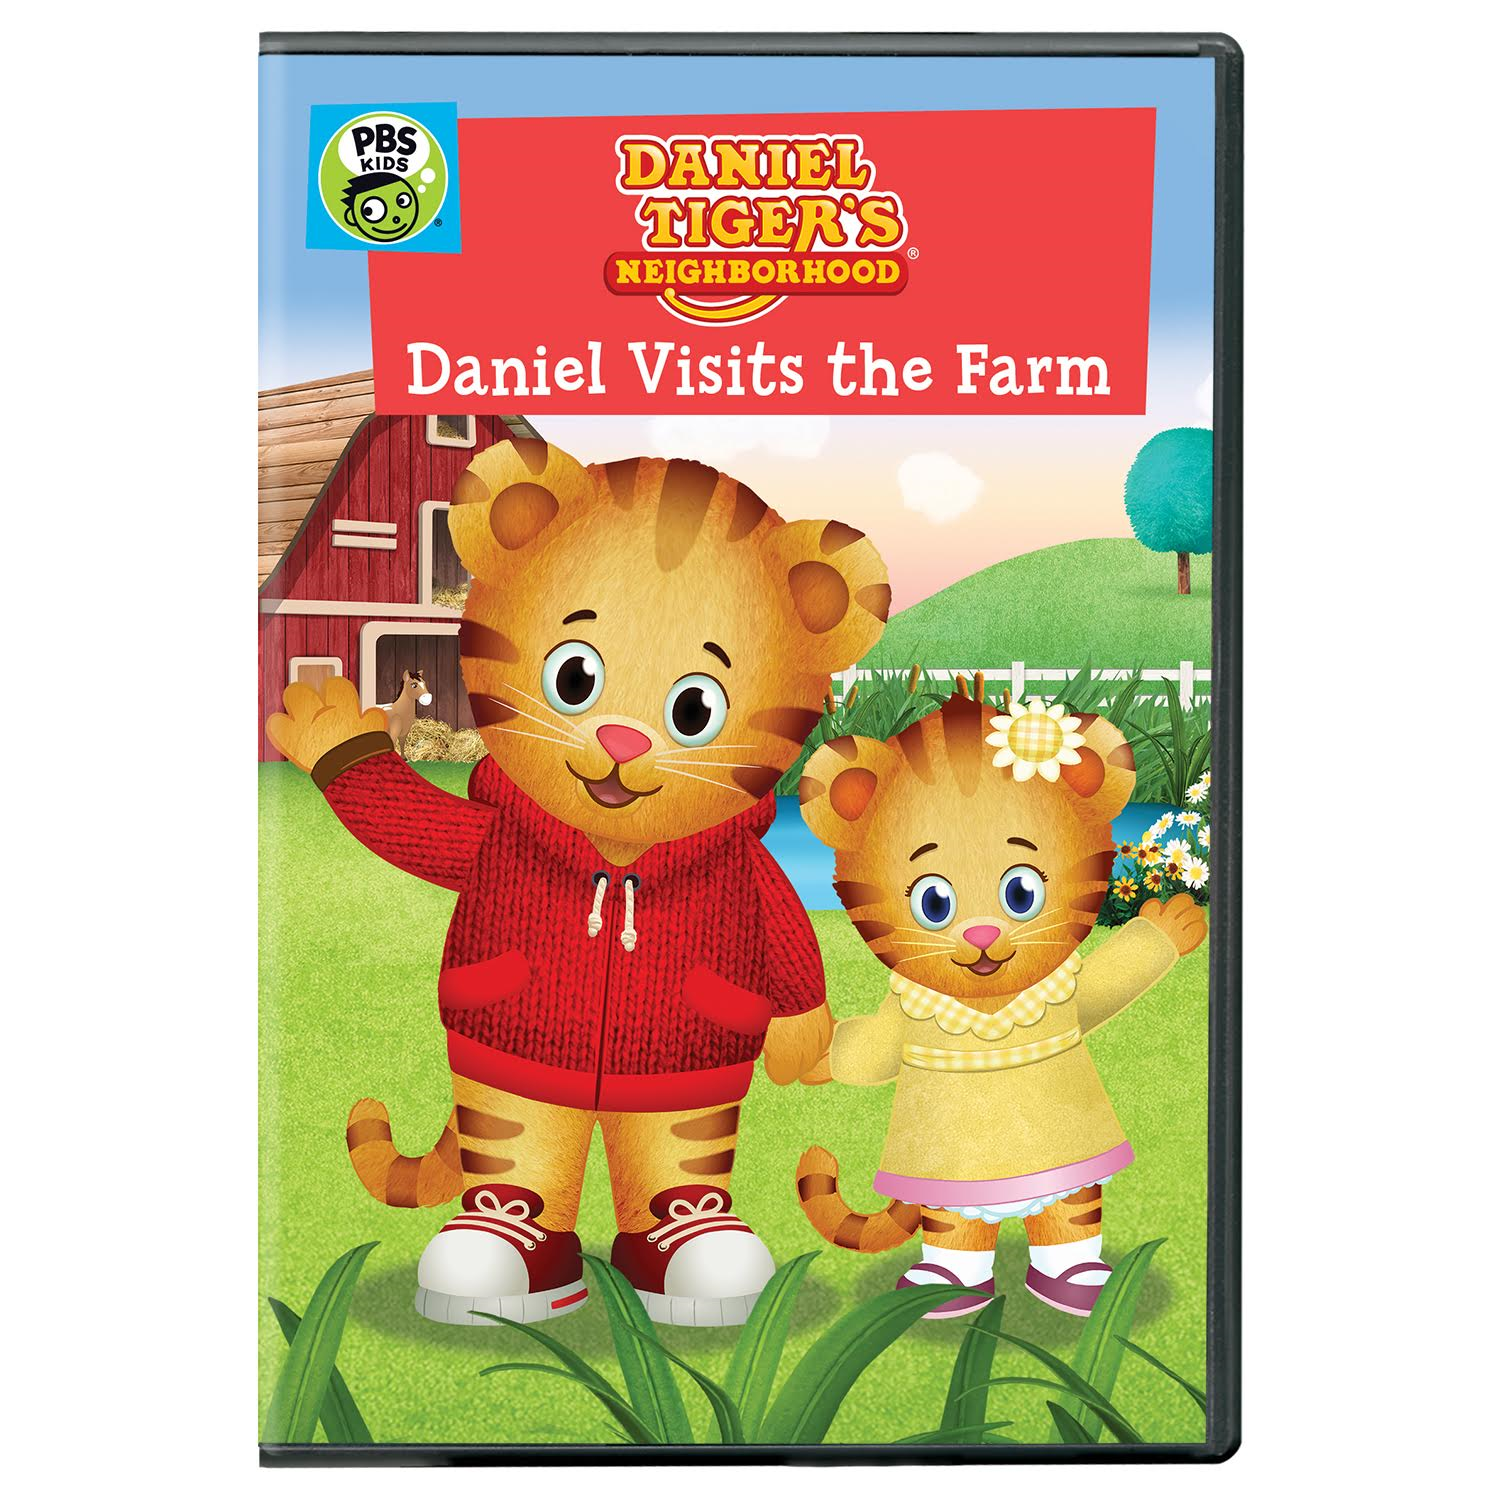 ease into daylight savings bedtime routine with new DVD releases ...